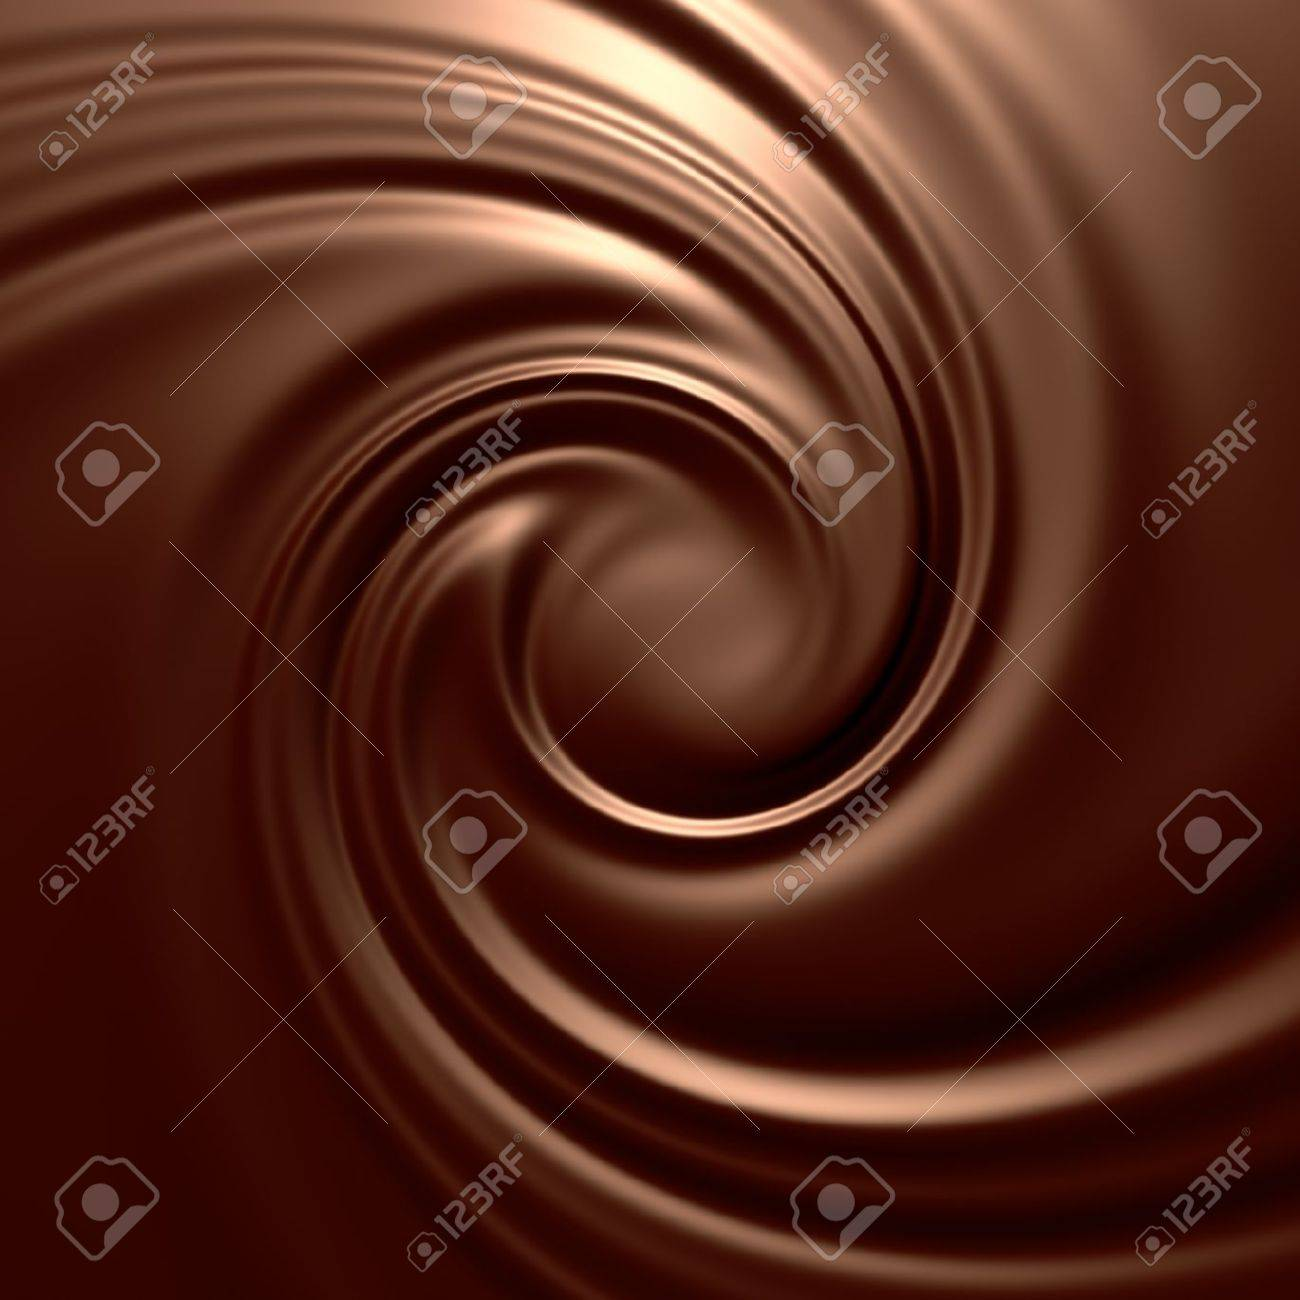 Astonishing chocolate swirl. Clean, detailed render. Backgrounds series. Stock Photo - 9056609